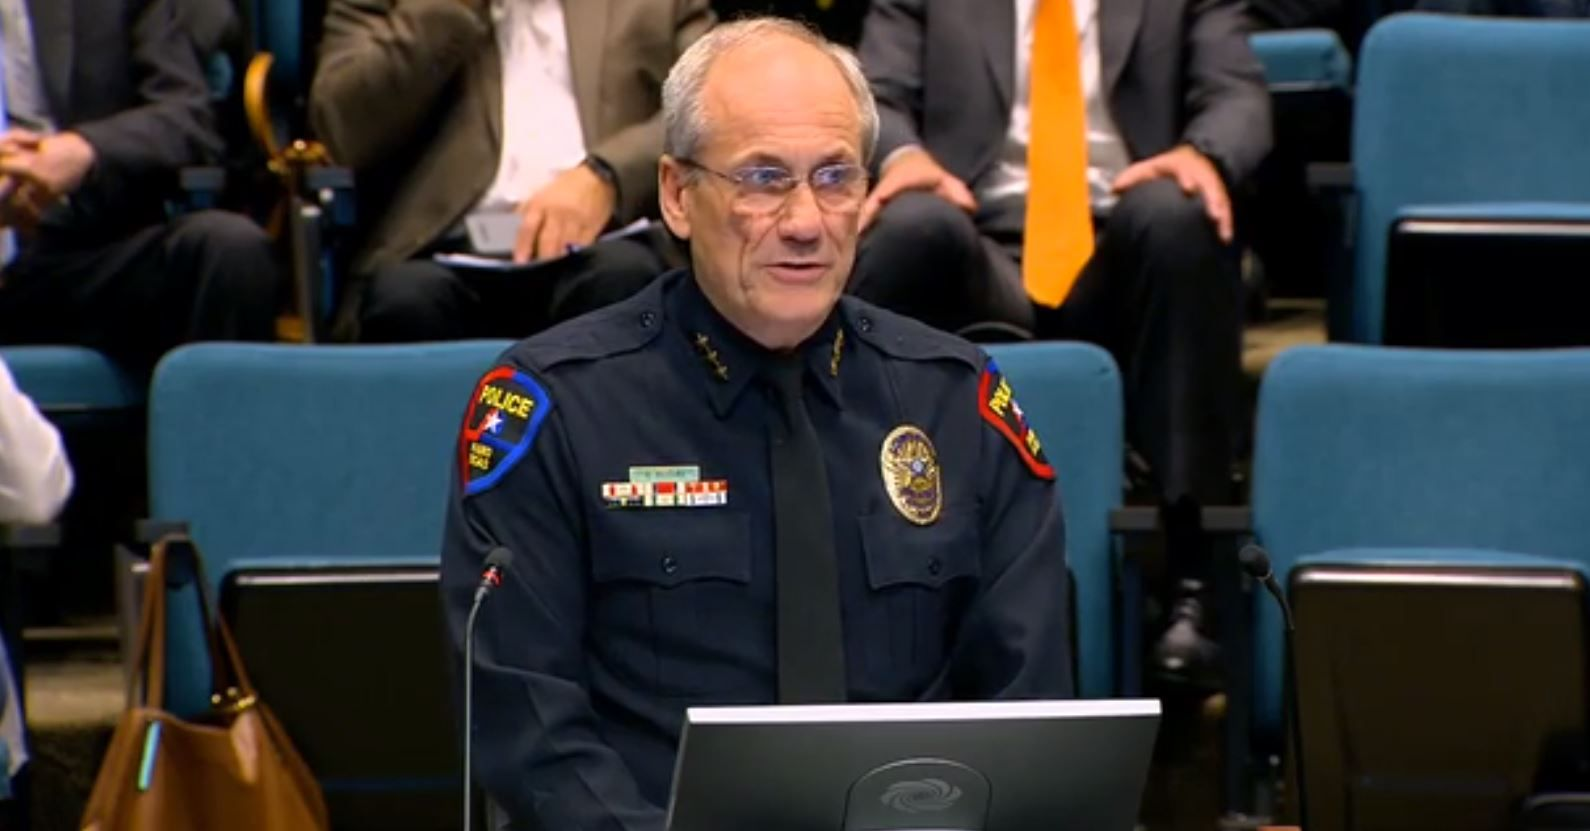 Plano to bring school resource officers back to its middle